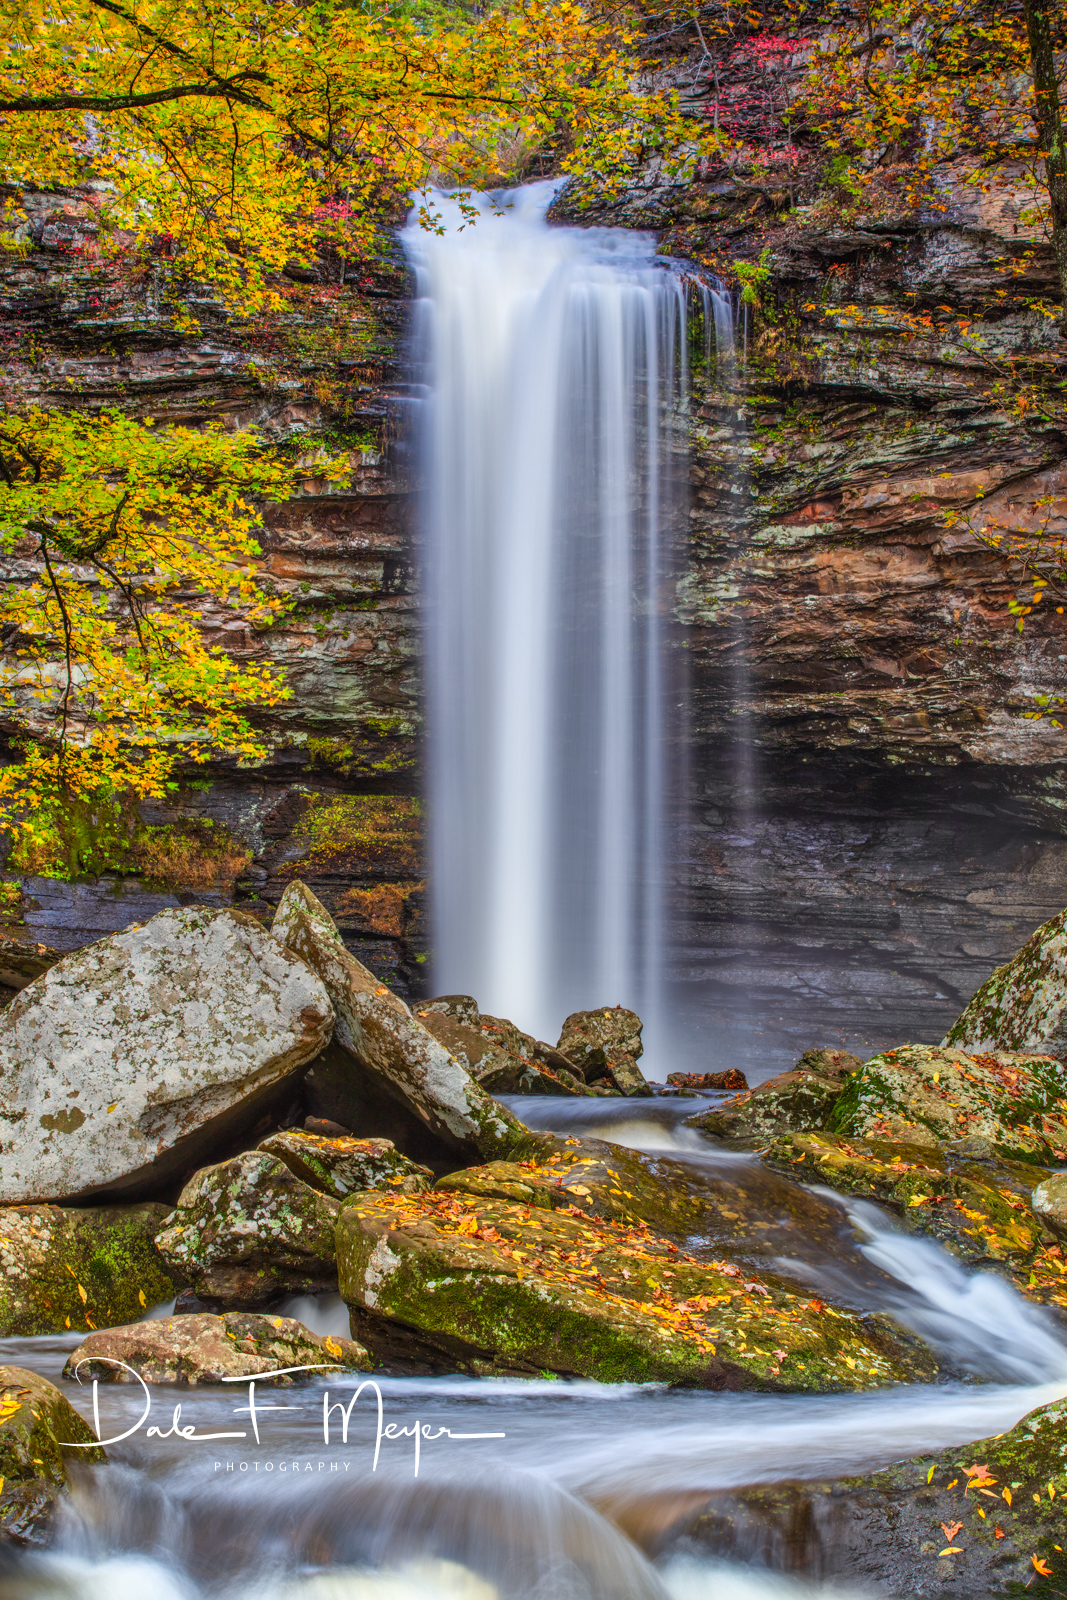 Cedar Falls is 90 feet high and roars loudly as the water pours over into the pool below, but at the same time has a quiet peaceful...